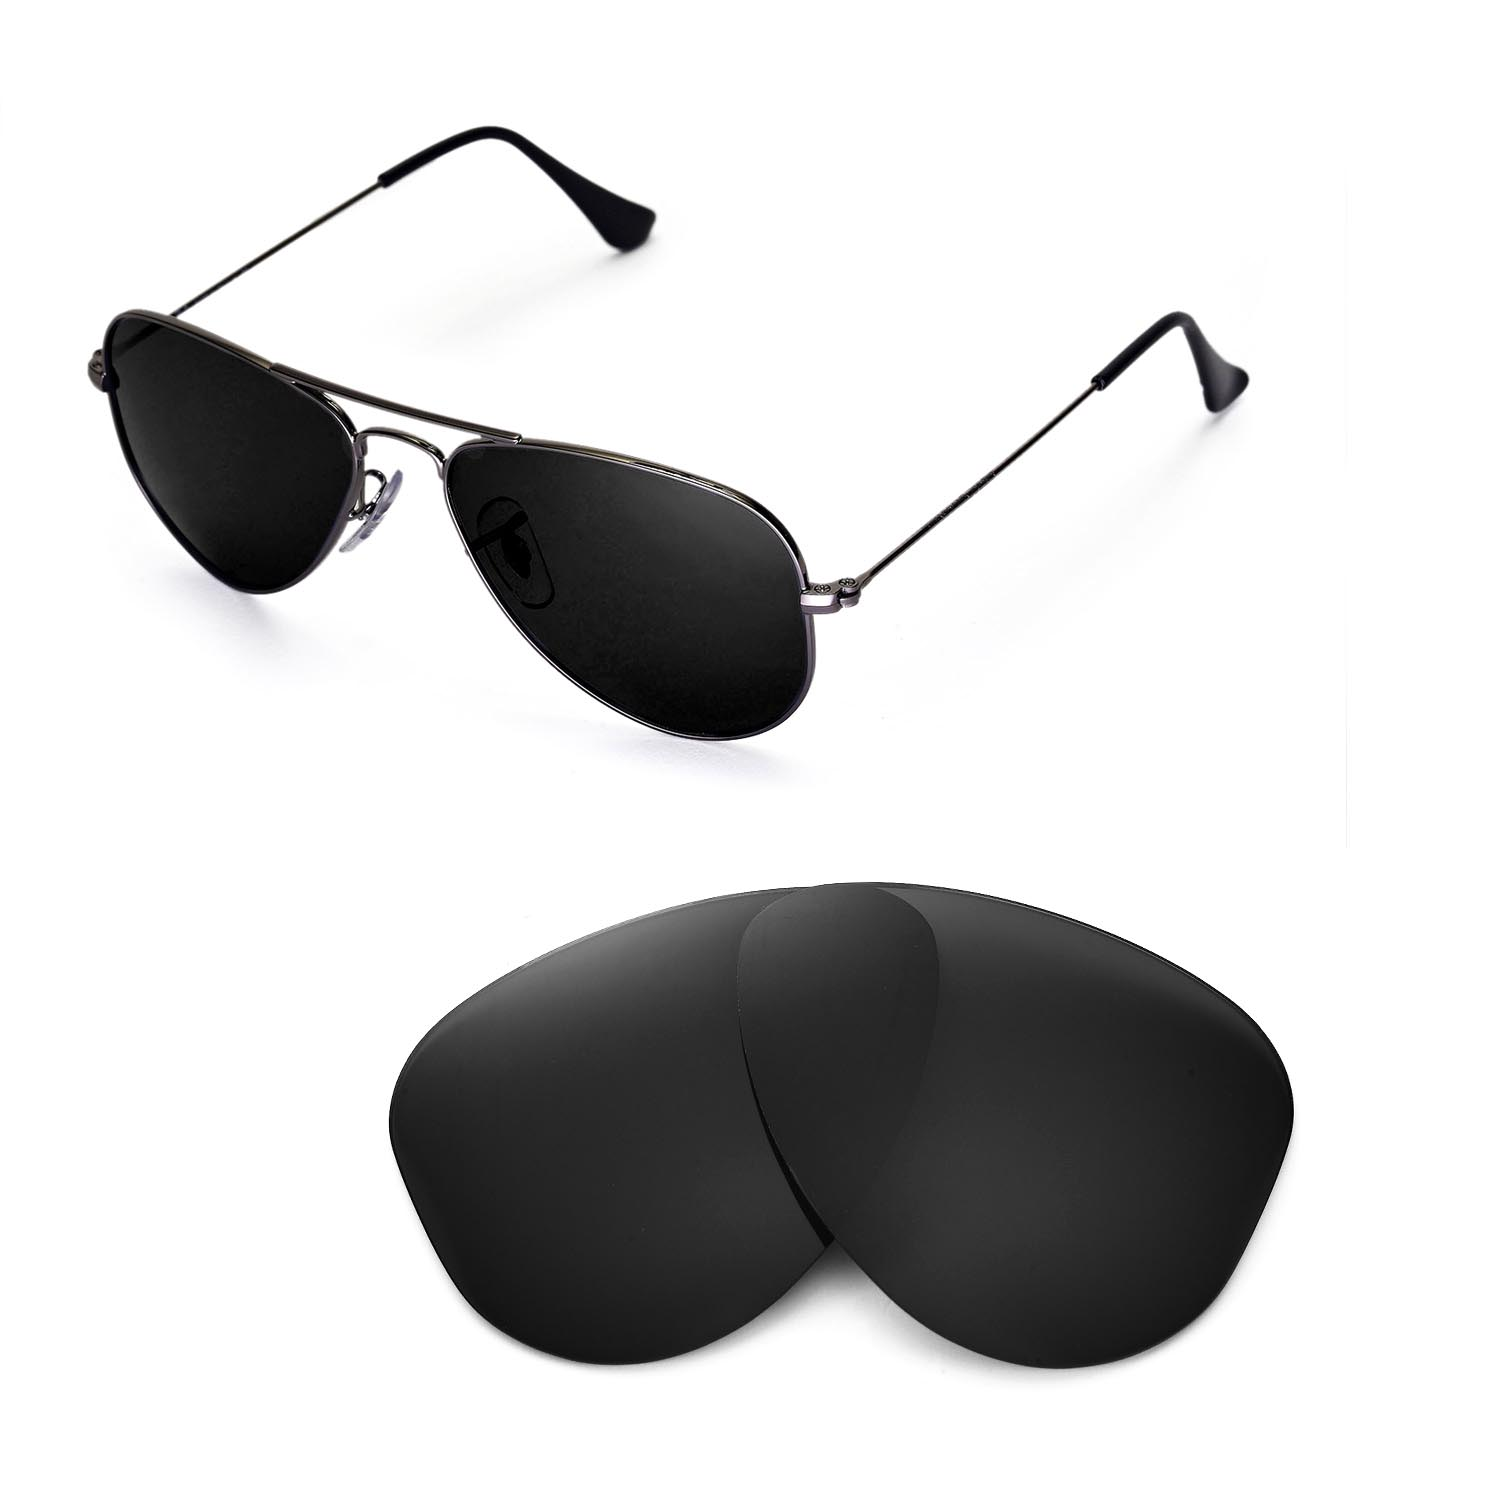 2f504c23a6 Details about New Walleva Polarized Black Lenses For Ray-Ban Aviator RB3044  Small Metal 52mm